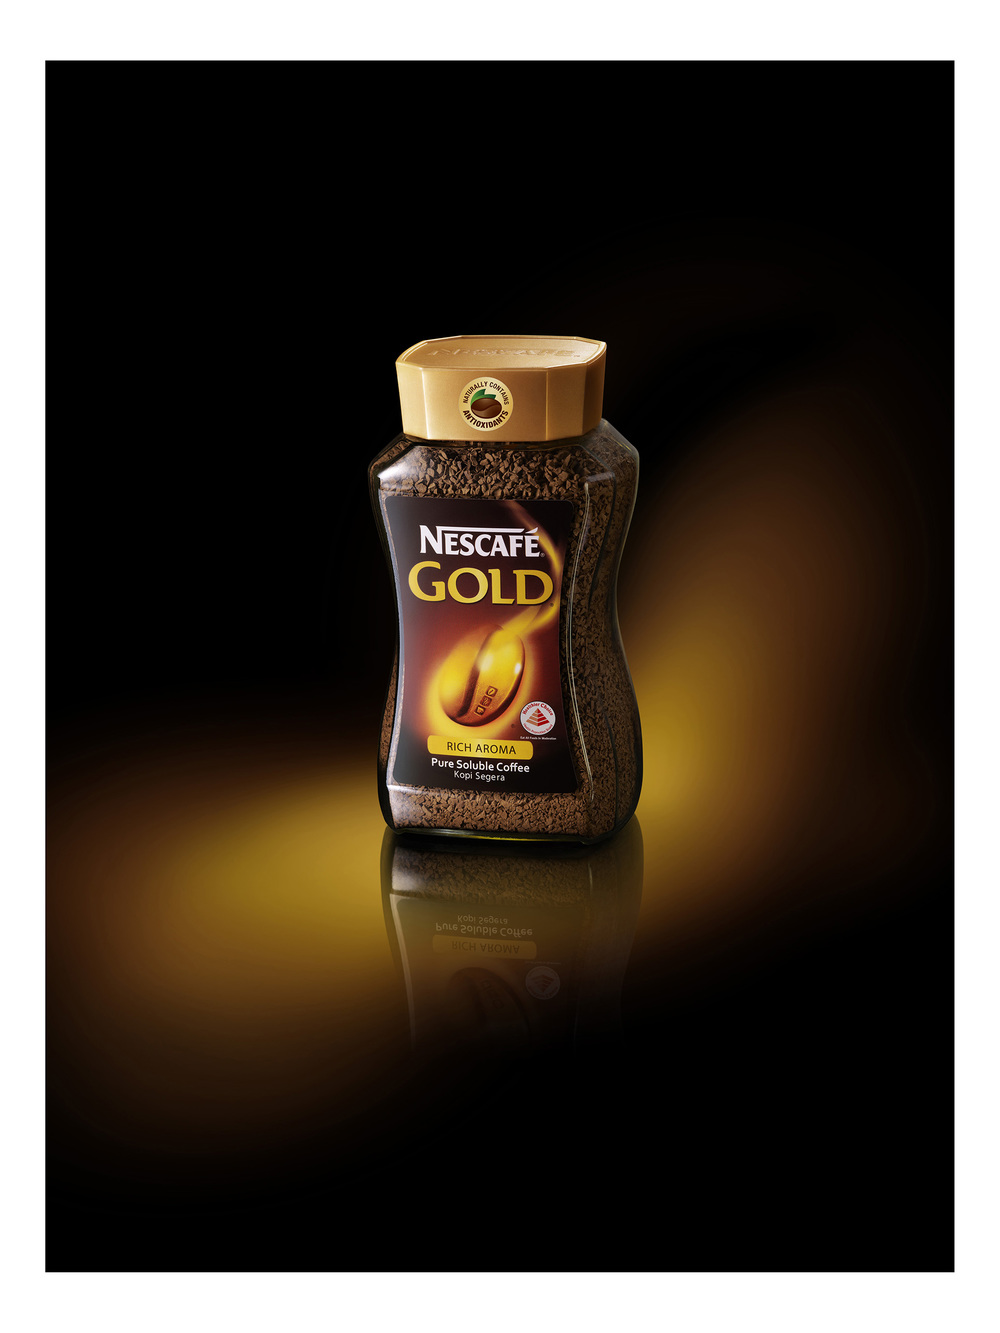 Nescafe Gold.jpg